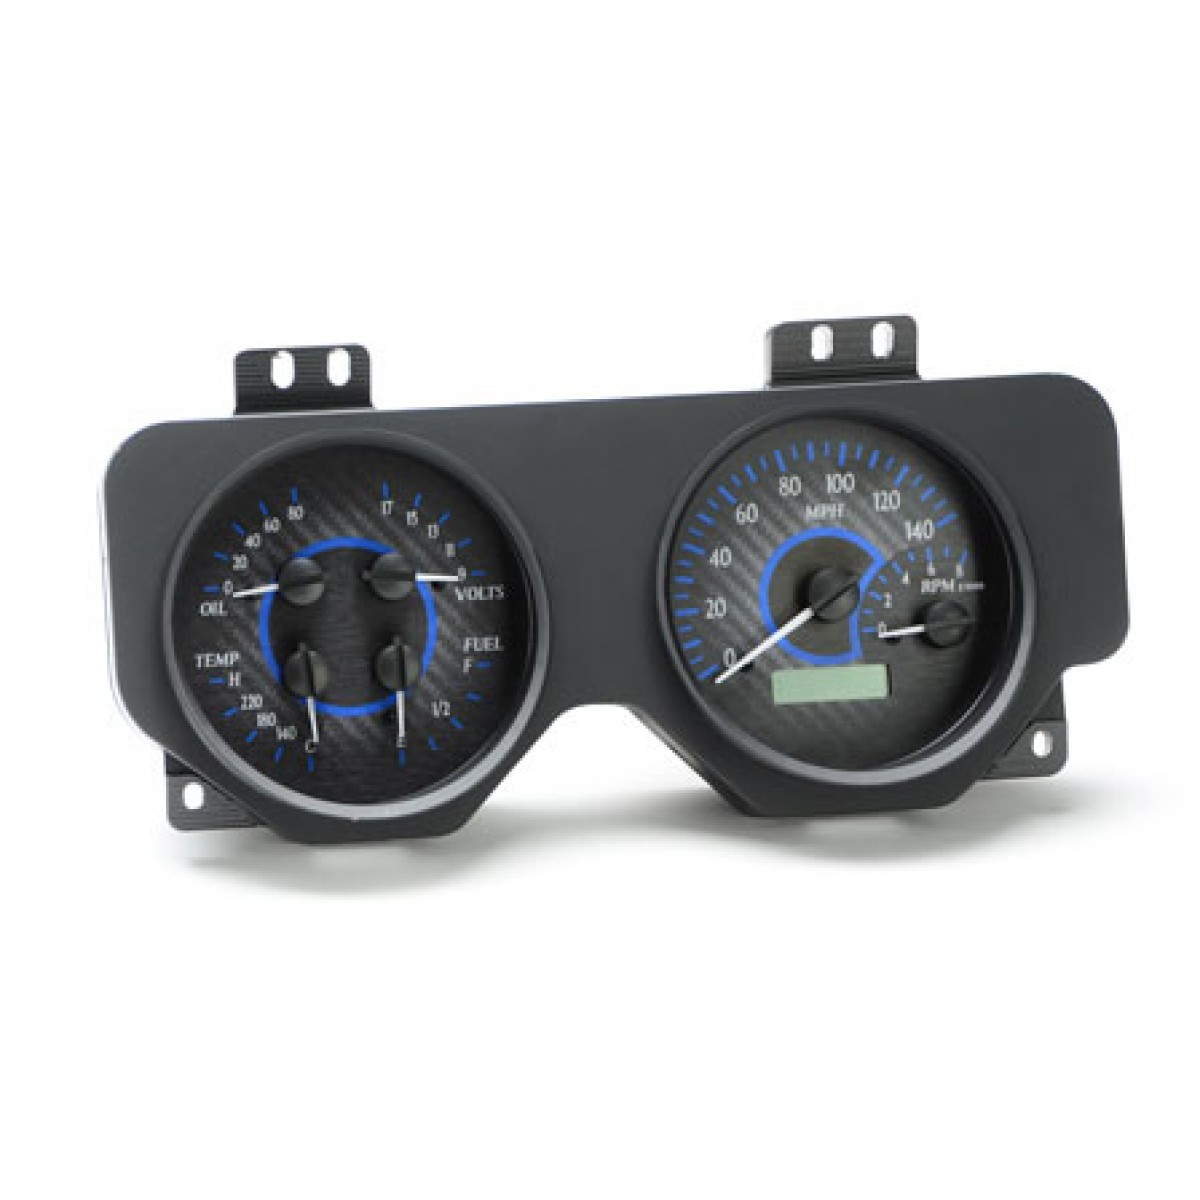 Digital Gauge Cluster : Vhx p fir pontiac firebird instruments